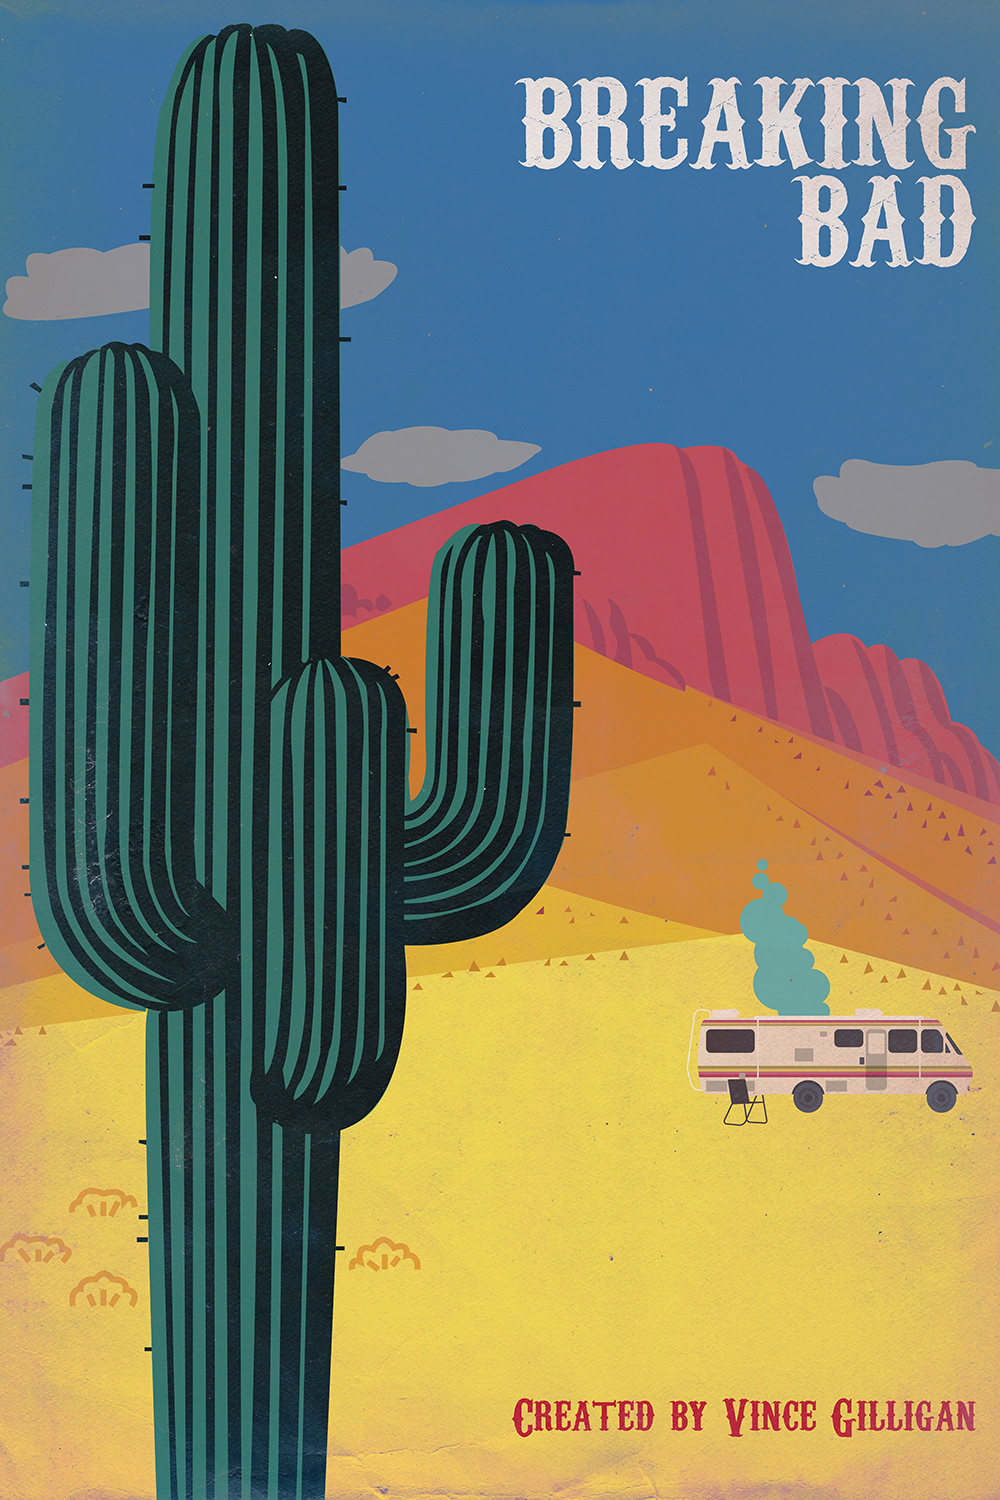 Vintage-style graphic poster of Breaking Bad with cactus and RV with blue smoke in the background in the desert